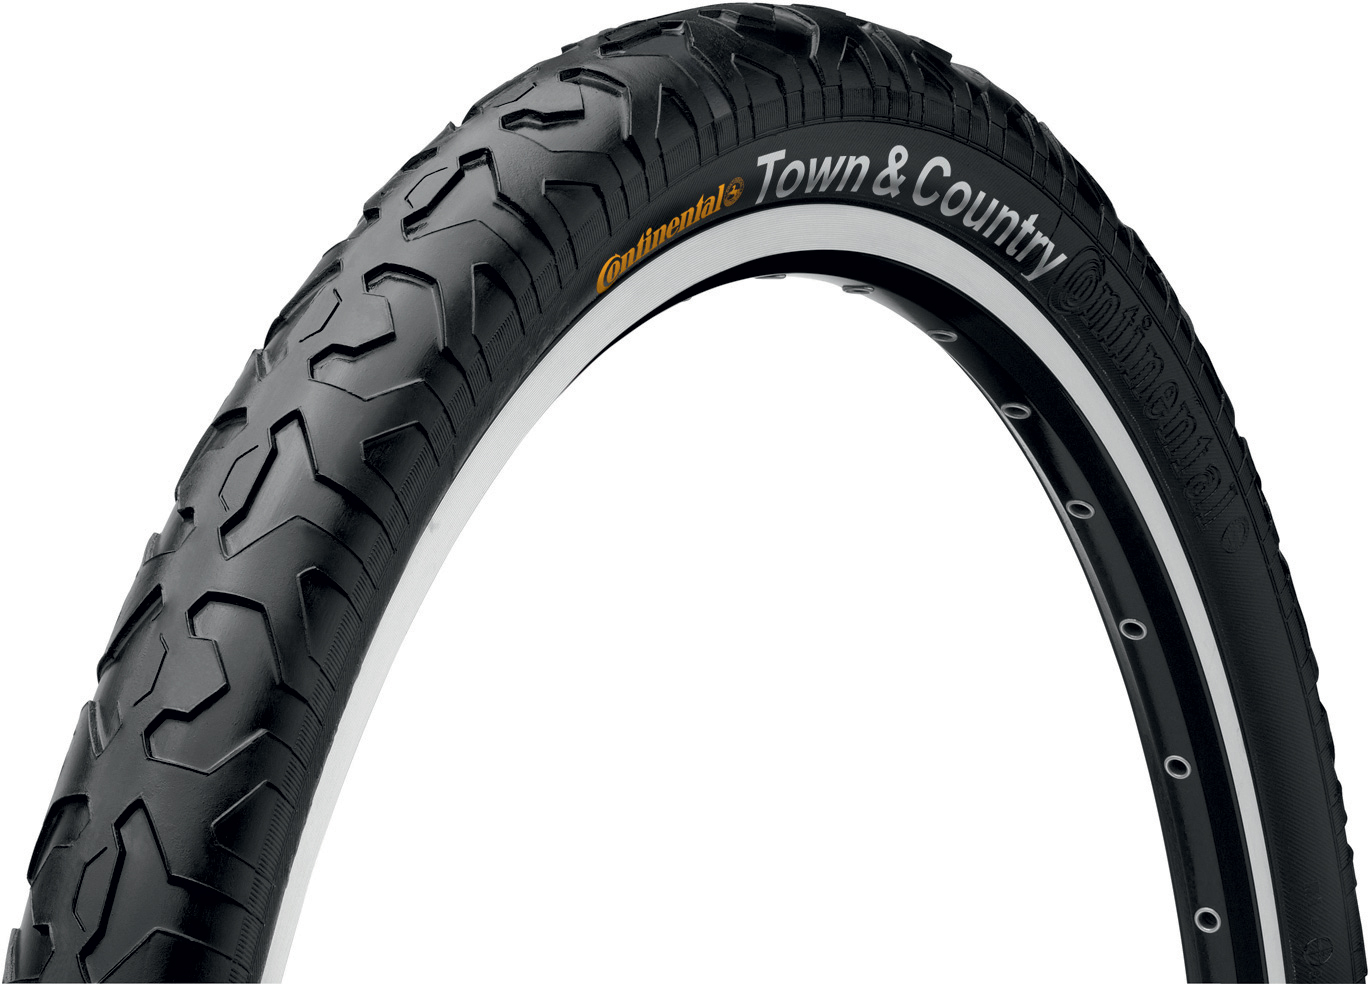 Continental Town and Country Cykeldæk | Tyres